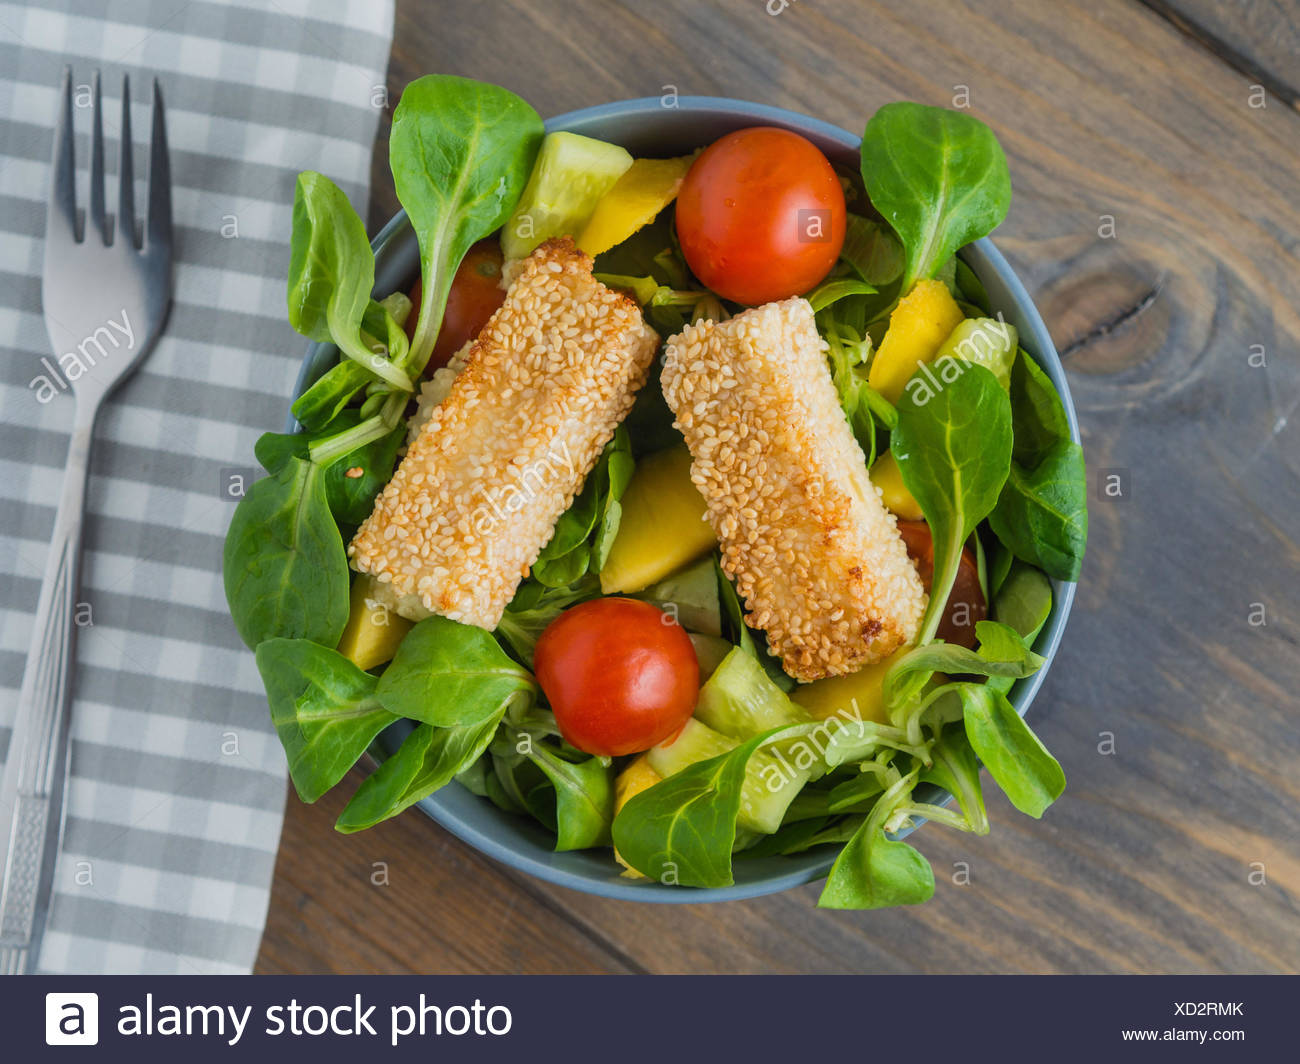 Baked feta cheese in sesame crust on mixed salad with mango - Stock Image